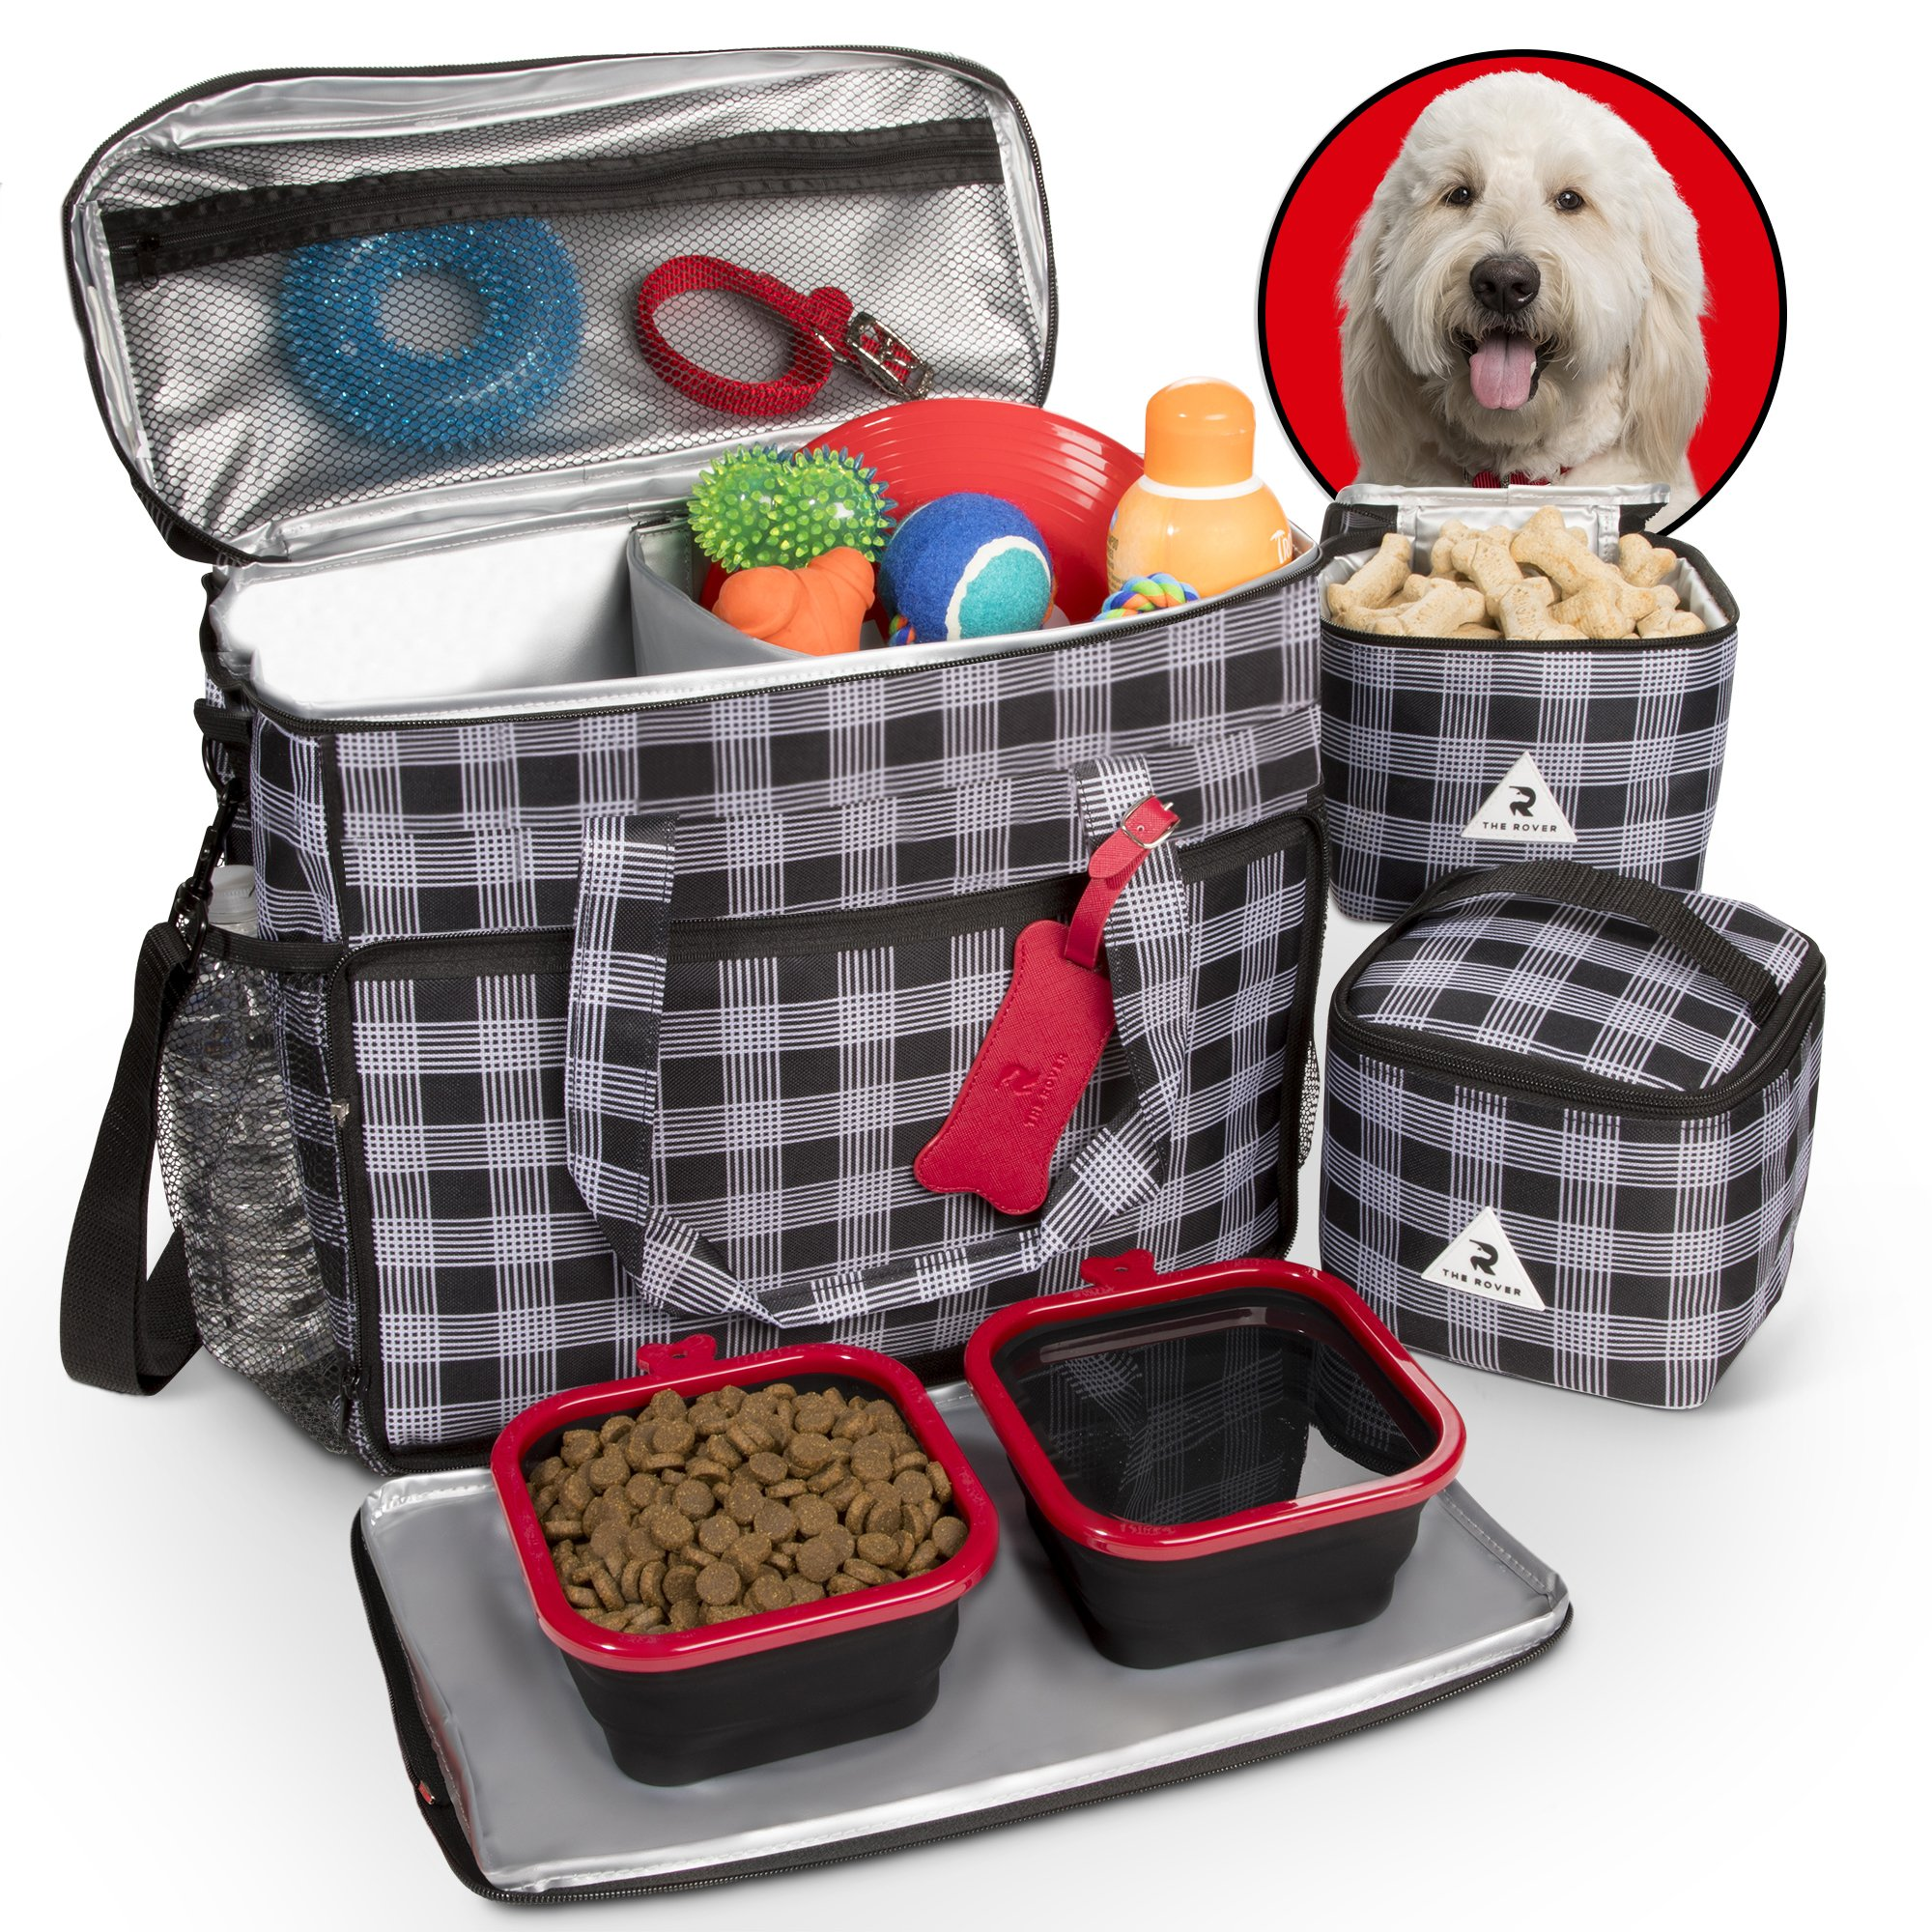 Premium Dog Travel Set - Includes Large Tote Bag, Secret Spare Leash, 2 Lined Food Cases, Zip-Off Placemat, and 2 Collapsible Silicone Bowls I The Rover